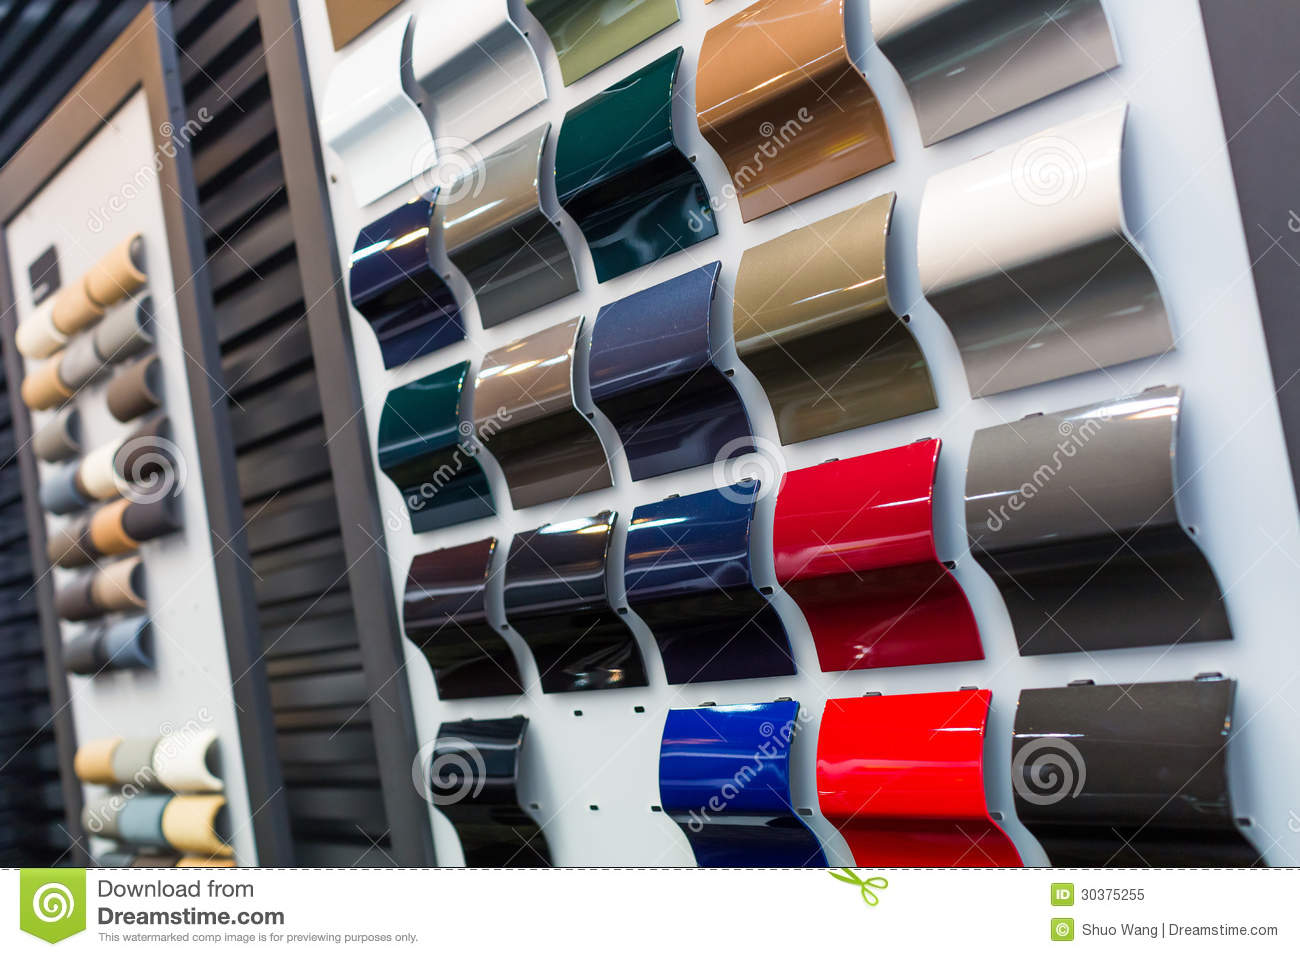 Car Paint Samples >> Car paint samples stock image. Image of black, golden - 30375255